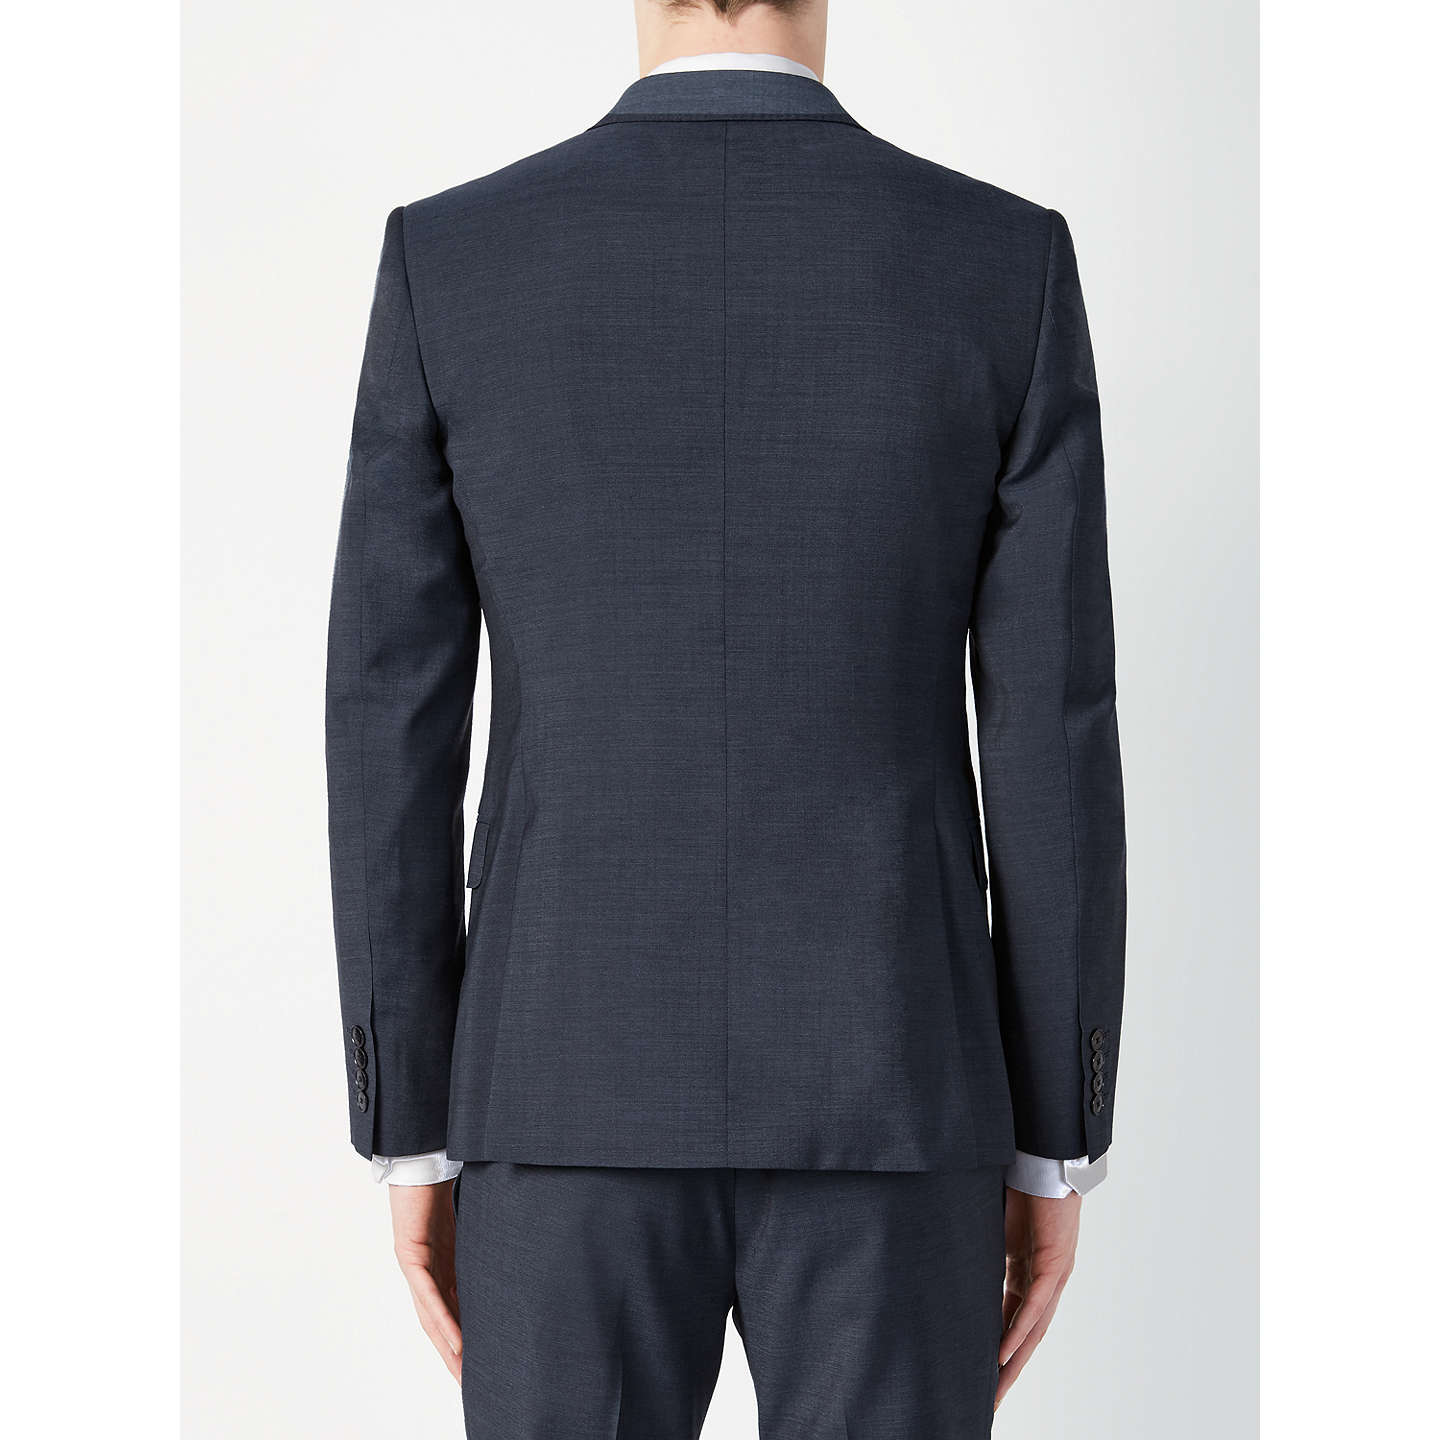 BuyKin by John Lewis Addison Tonic Slim Fit Suit Jacket, Petrol, 40R Online at johnlewis.com